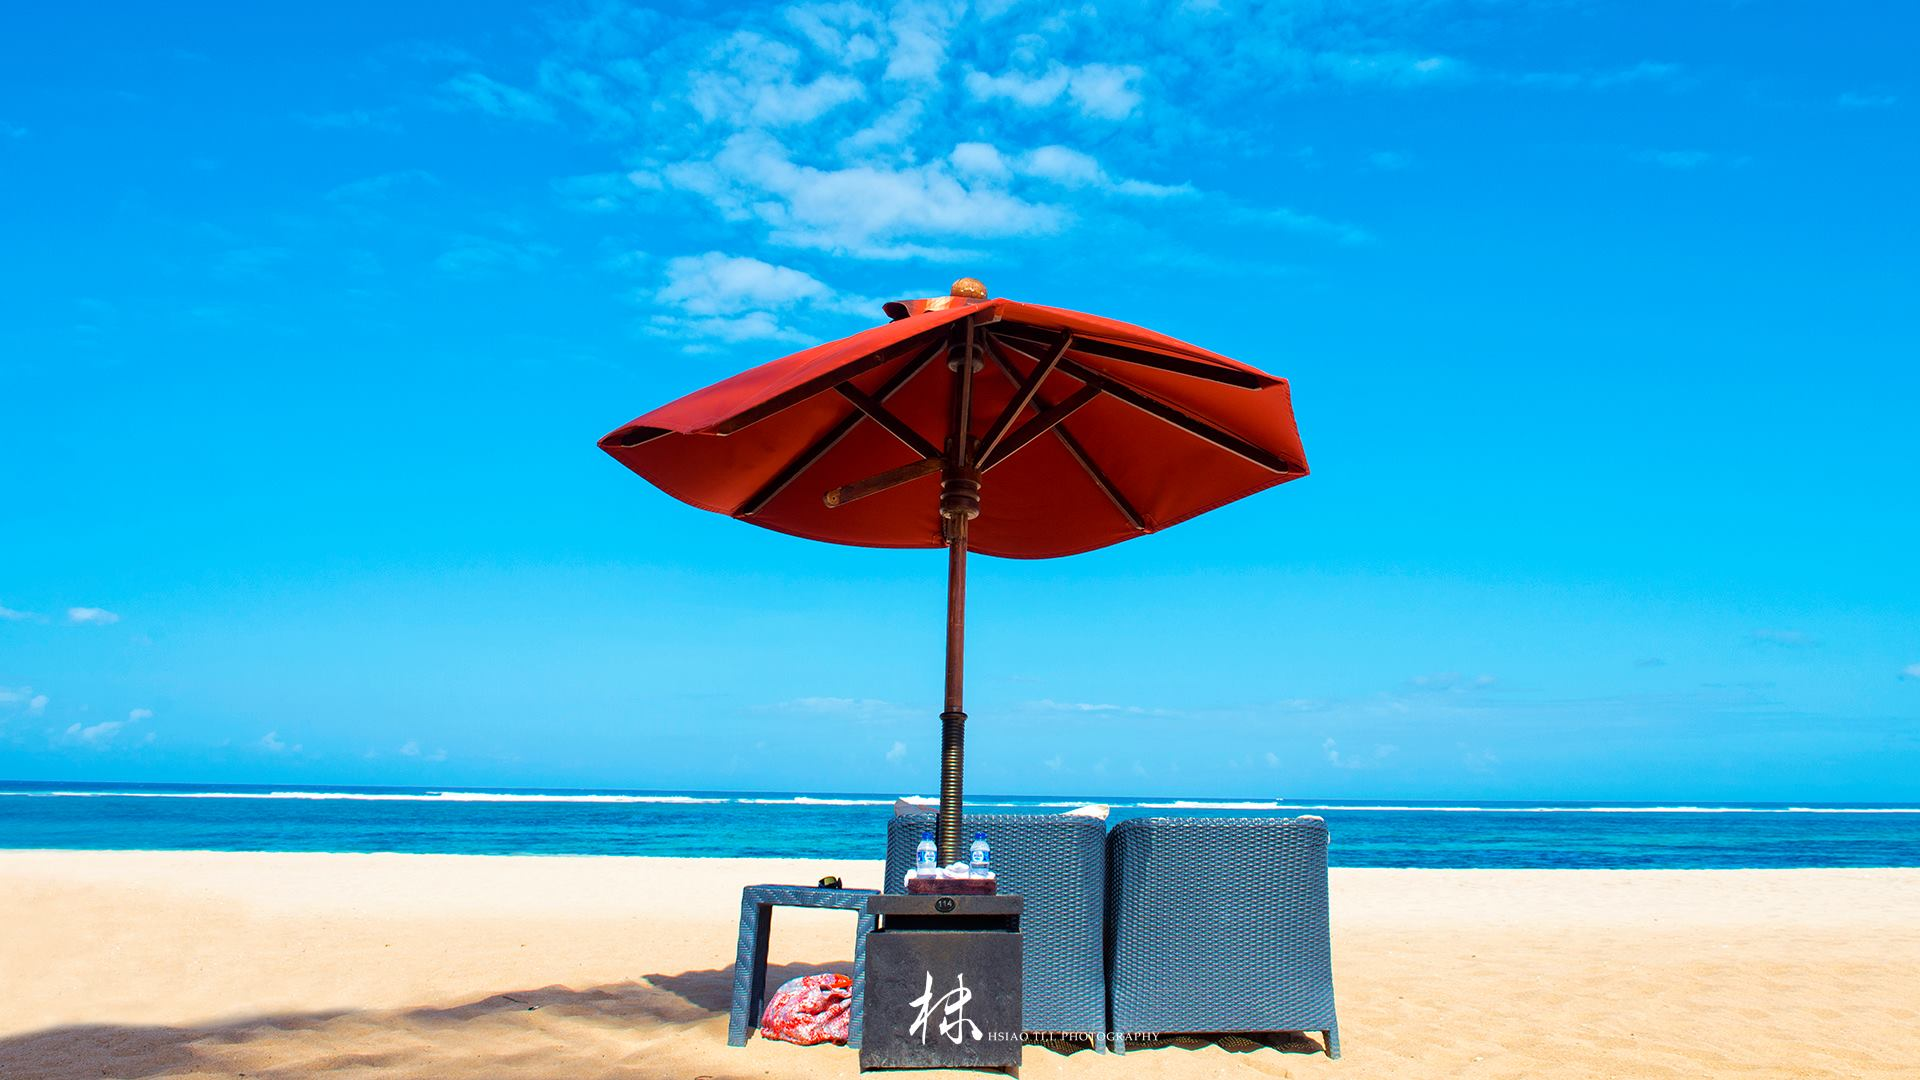 峇里島聖瑞吉斯度假村 The St. Regis Bali Resort | A Luxury Resort in Nusa Dua